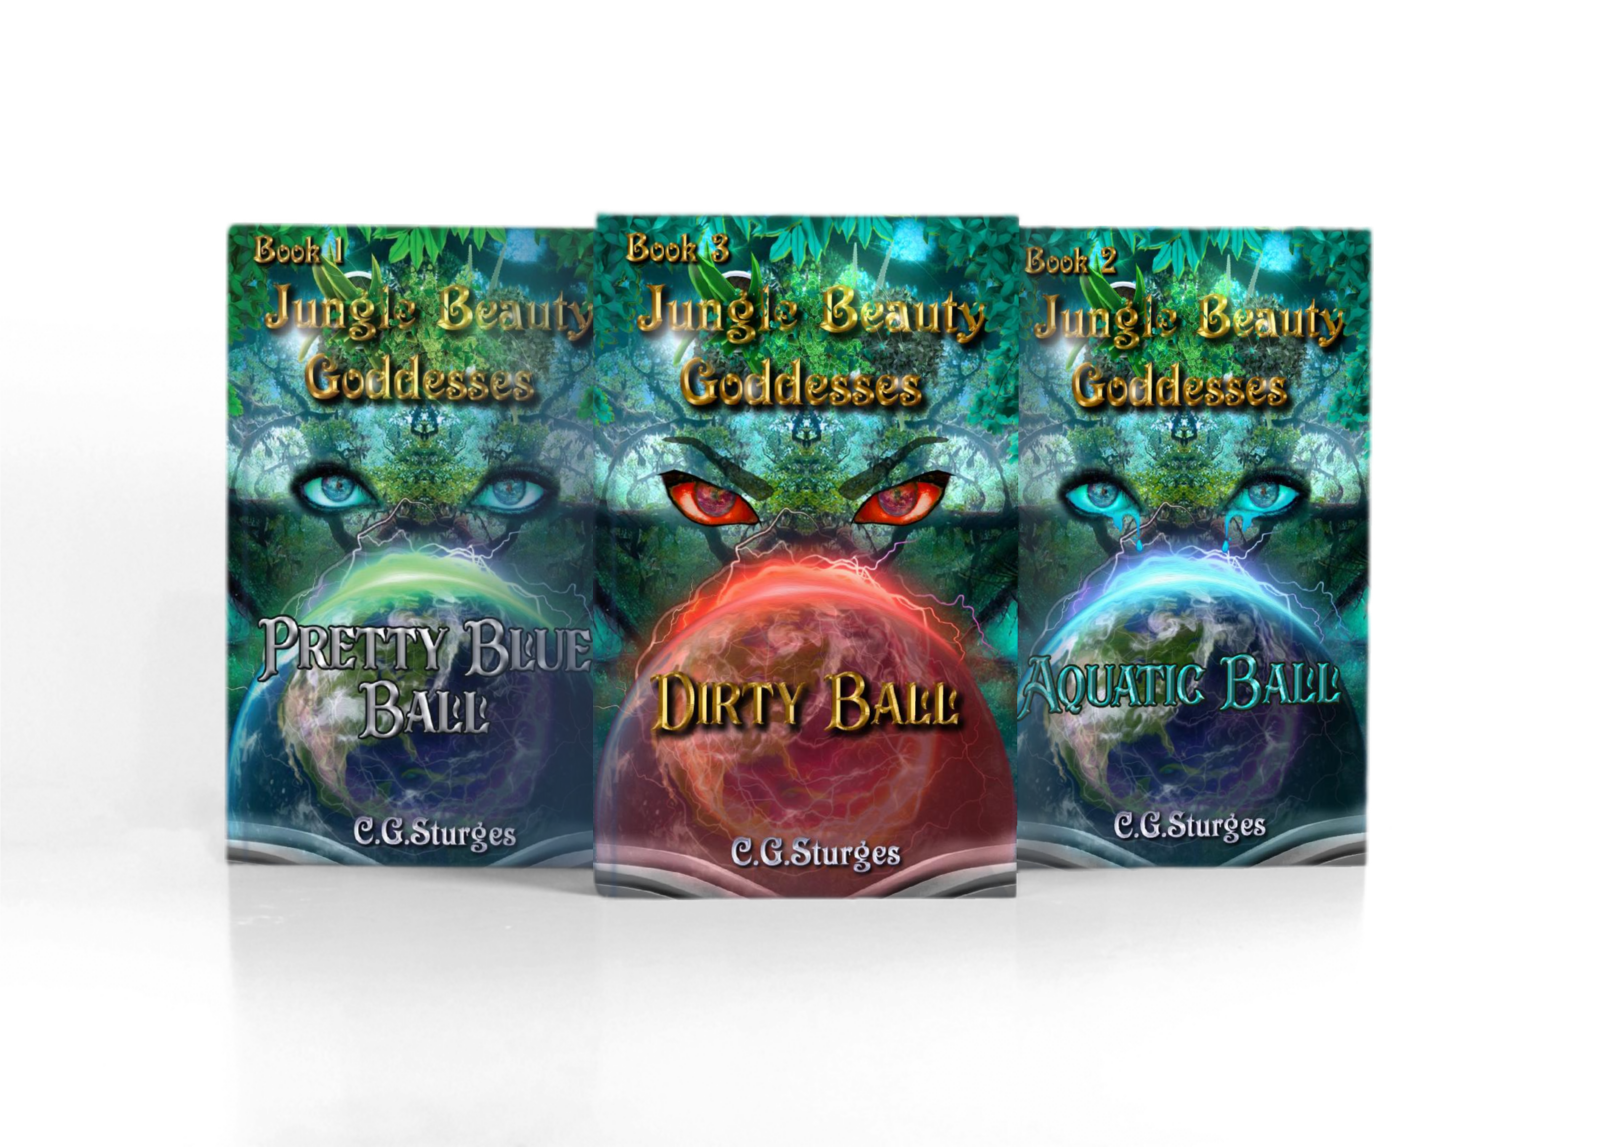 Jungle Beauty Goddesses: Dirty Ball series